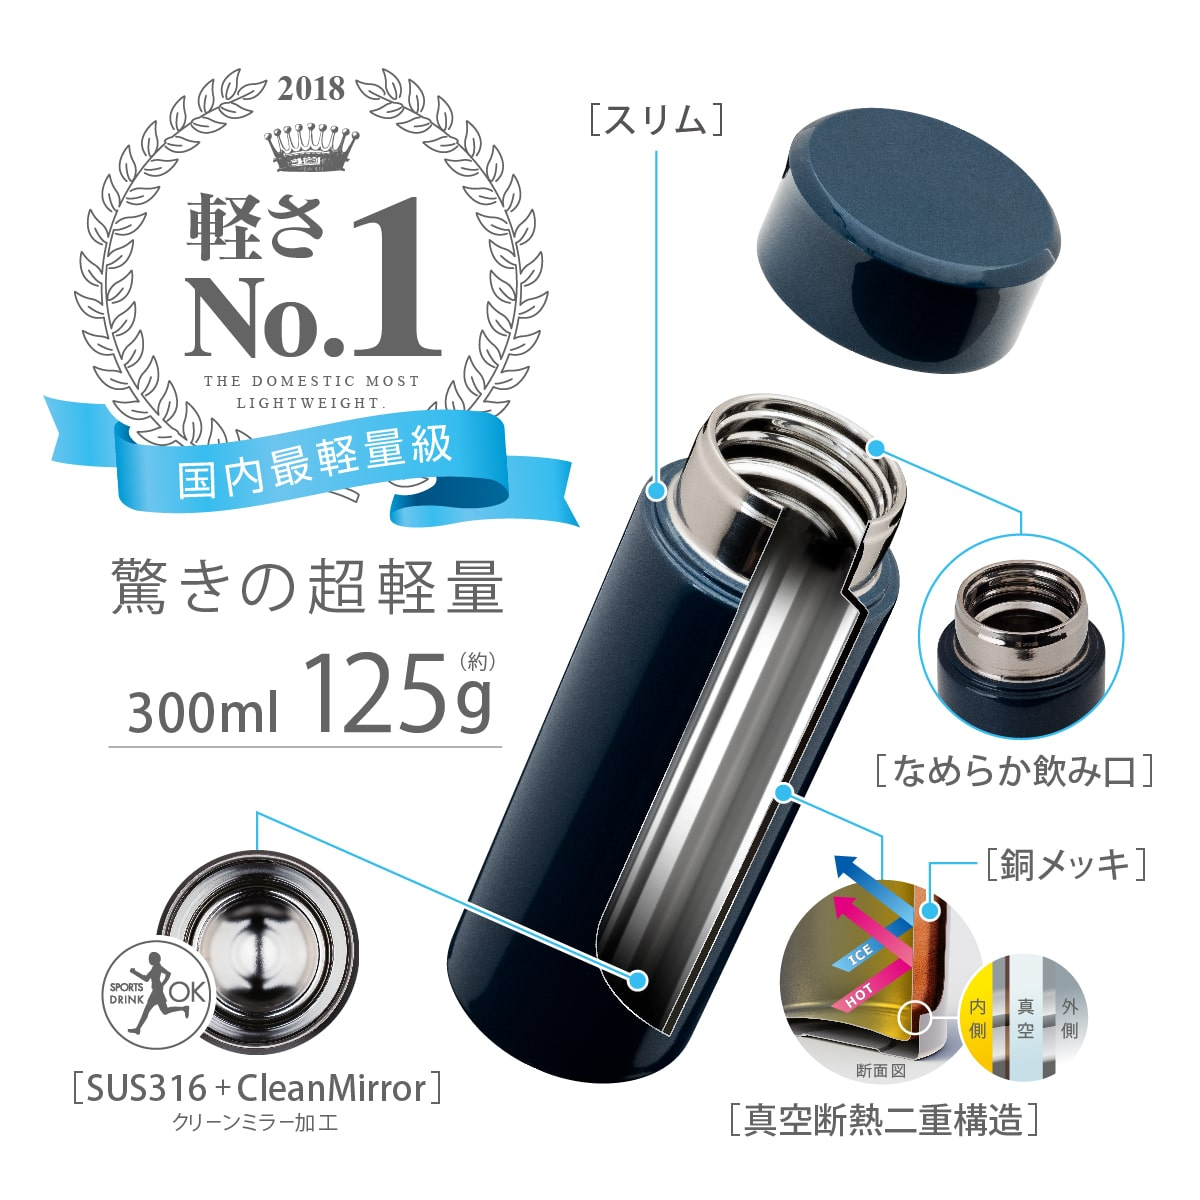 Airlist 超軽量スリムボトル 300ml ピンク image02 thumbnail